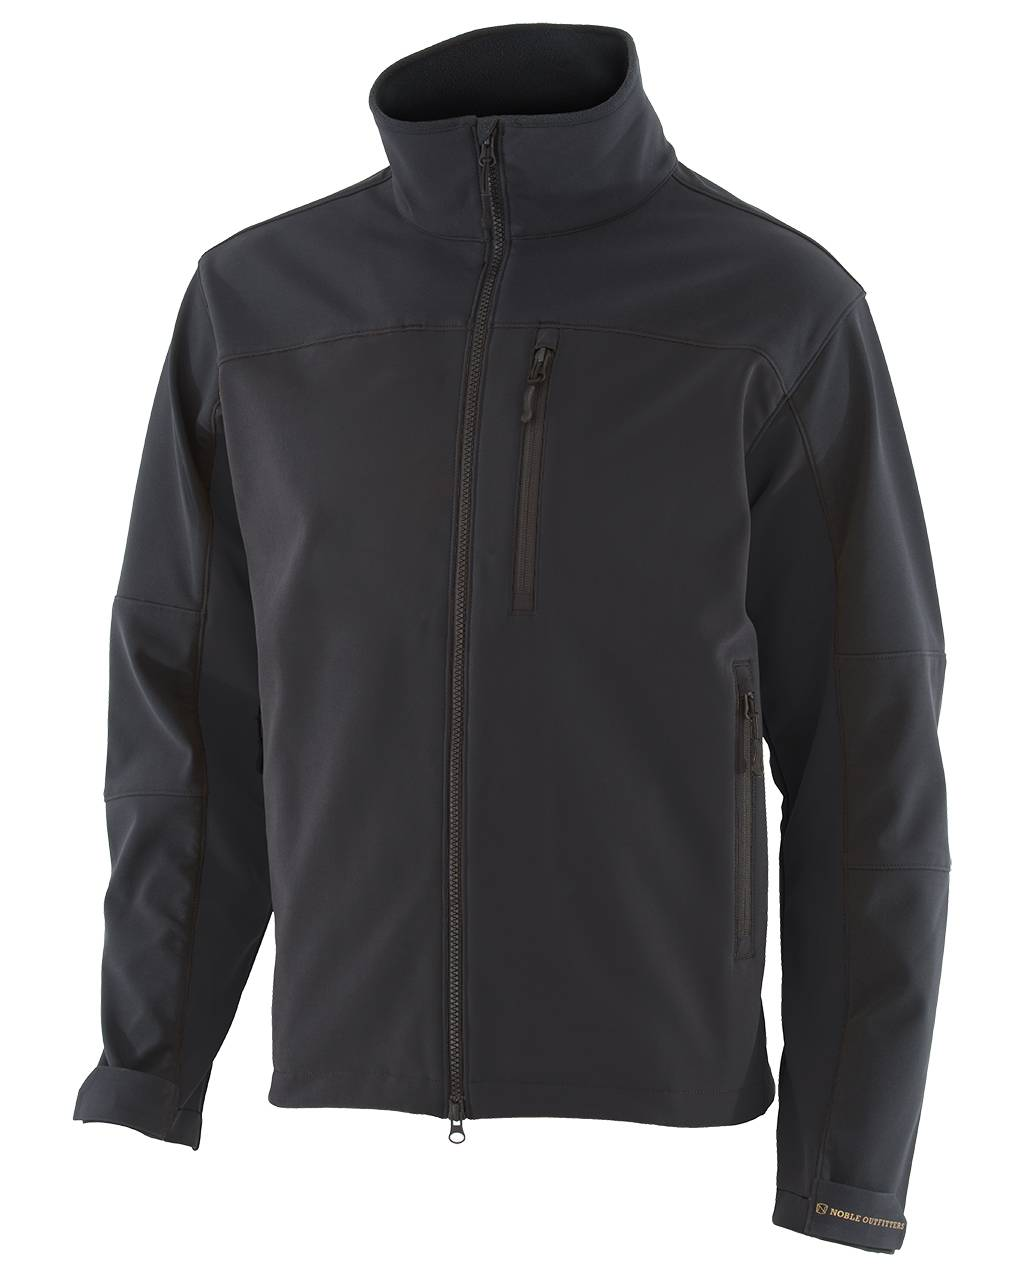 Noble Outfitters Menu0026#39;s Jackets | Noble Outfitters Jackets ...